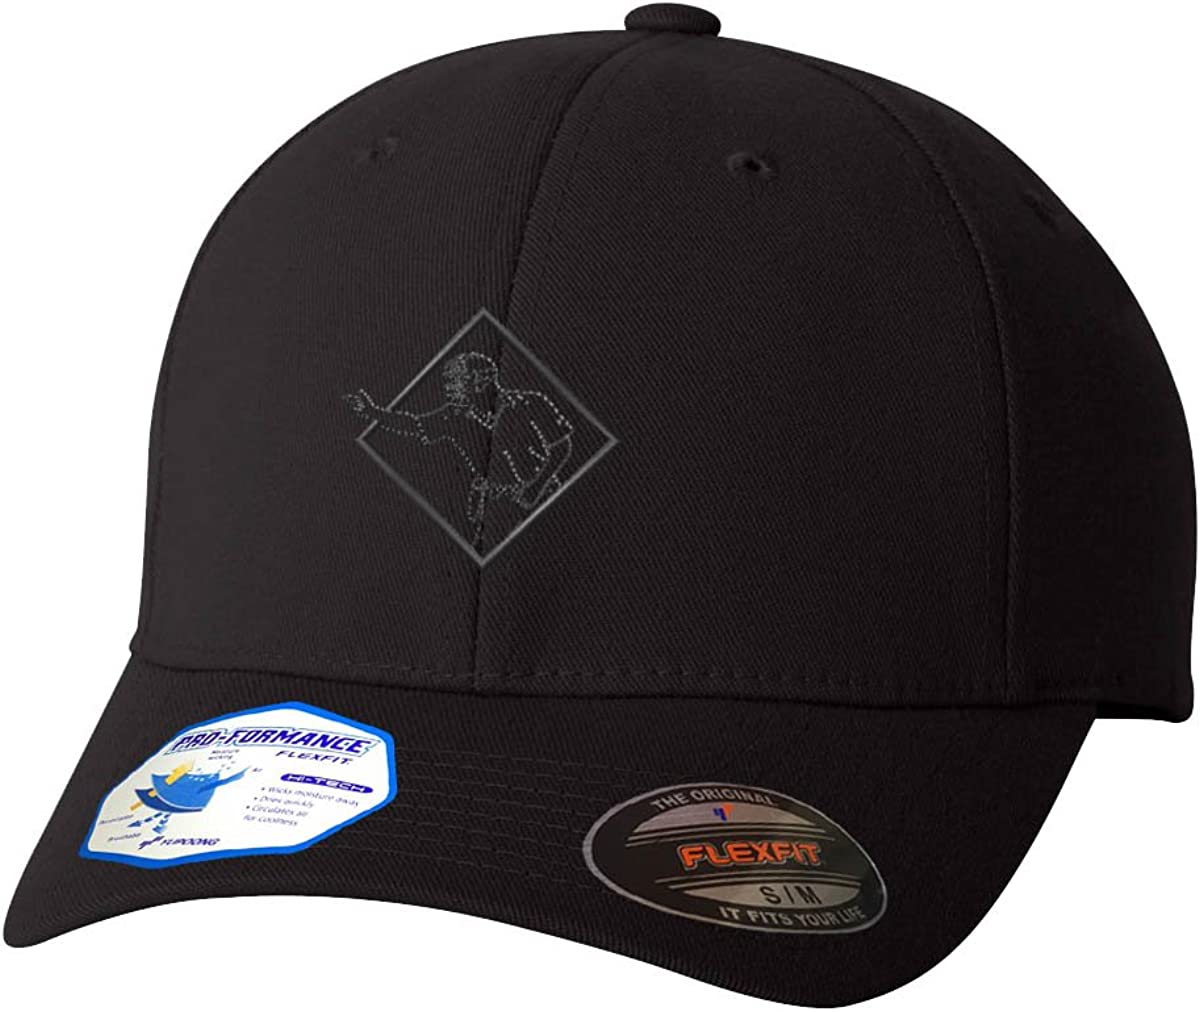 Baseball Umpire Flexfit Max 84% OFF Adult All items in the store Pro-Formance Black Sma Branded Hat